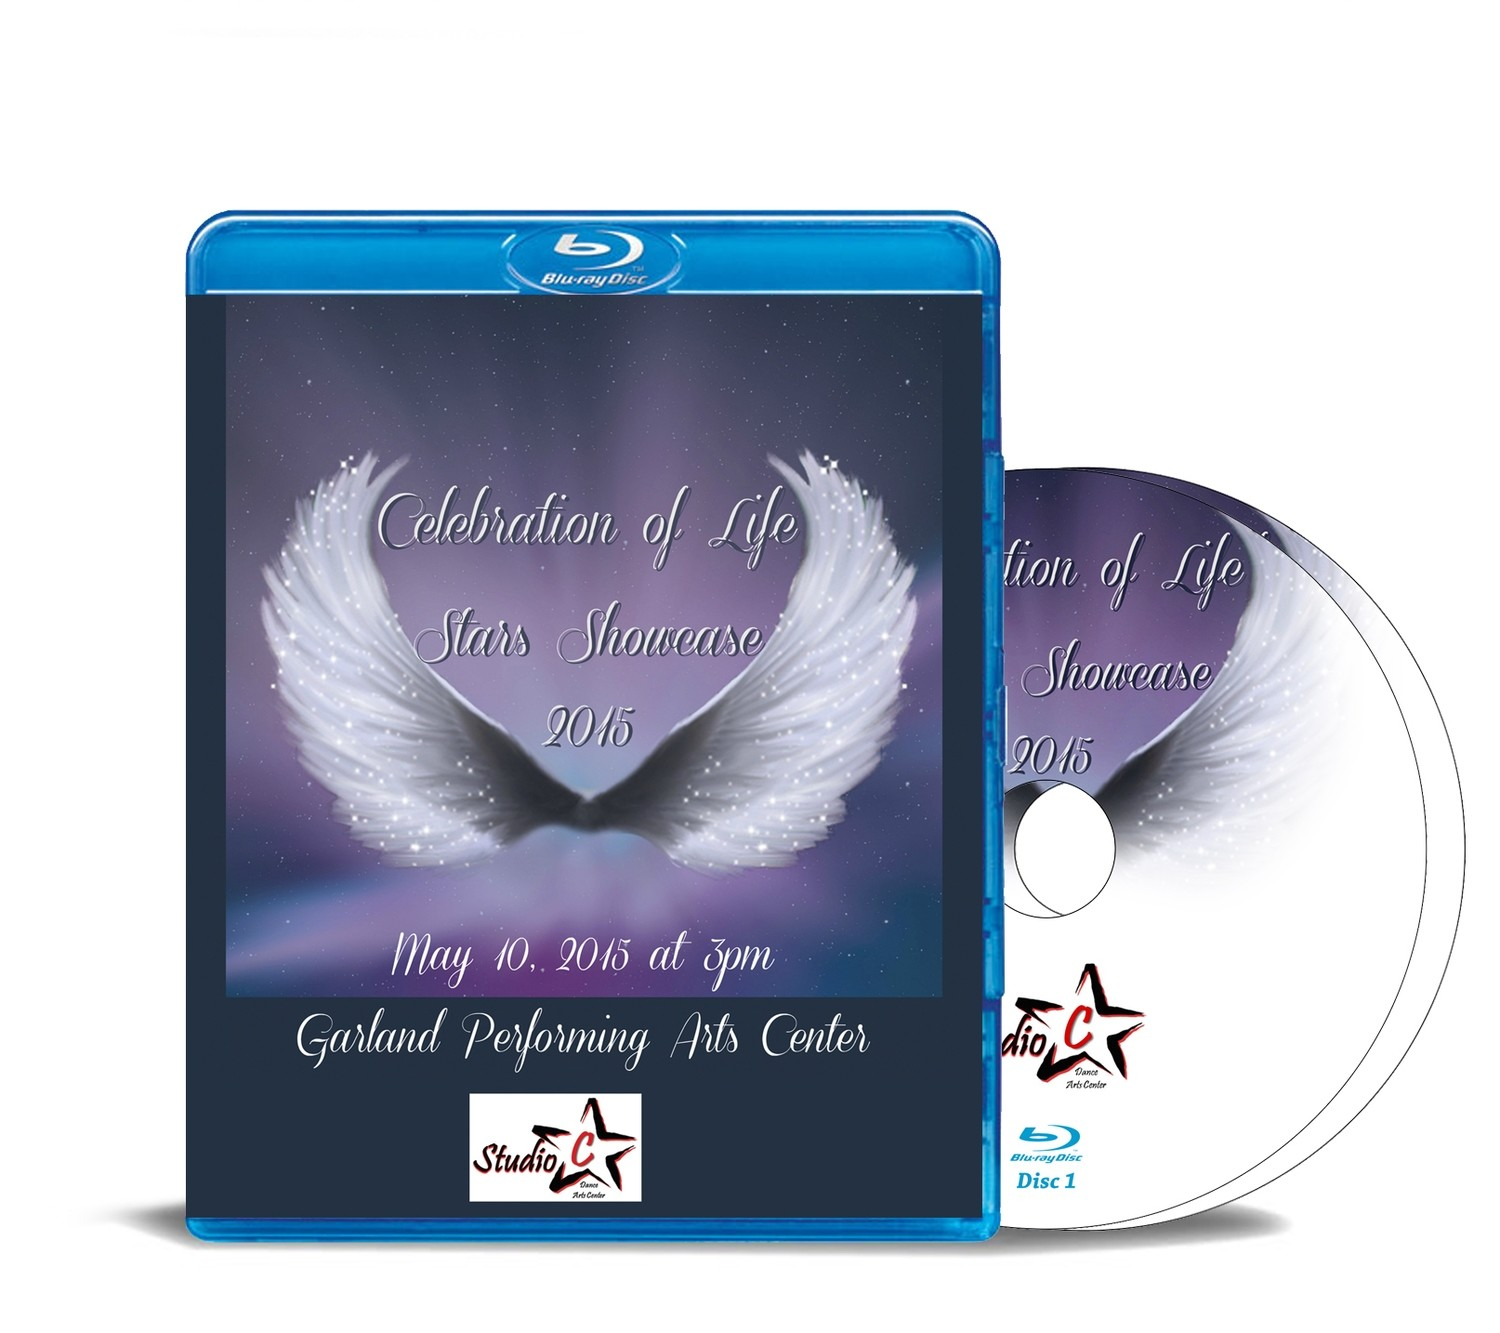 Stars Showcase Celebration of Life Blu-ray 2015